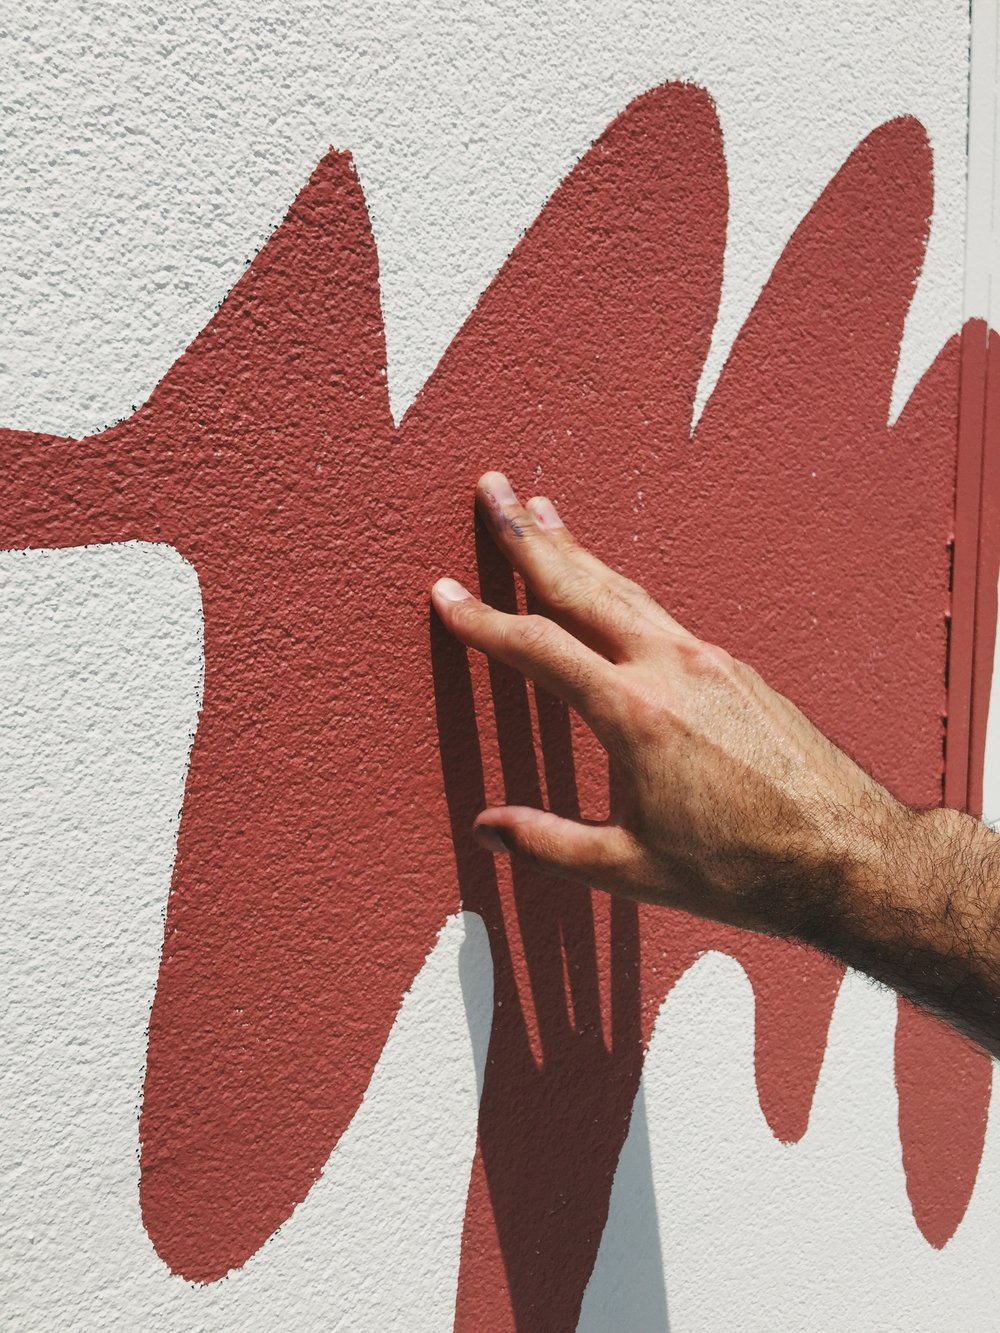 Touching the Wall by Kyle Steed